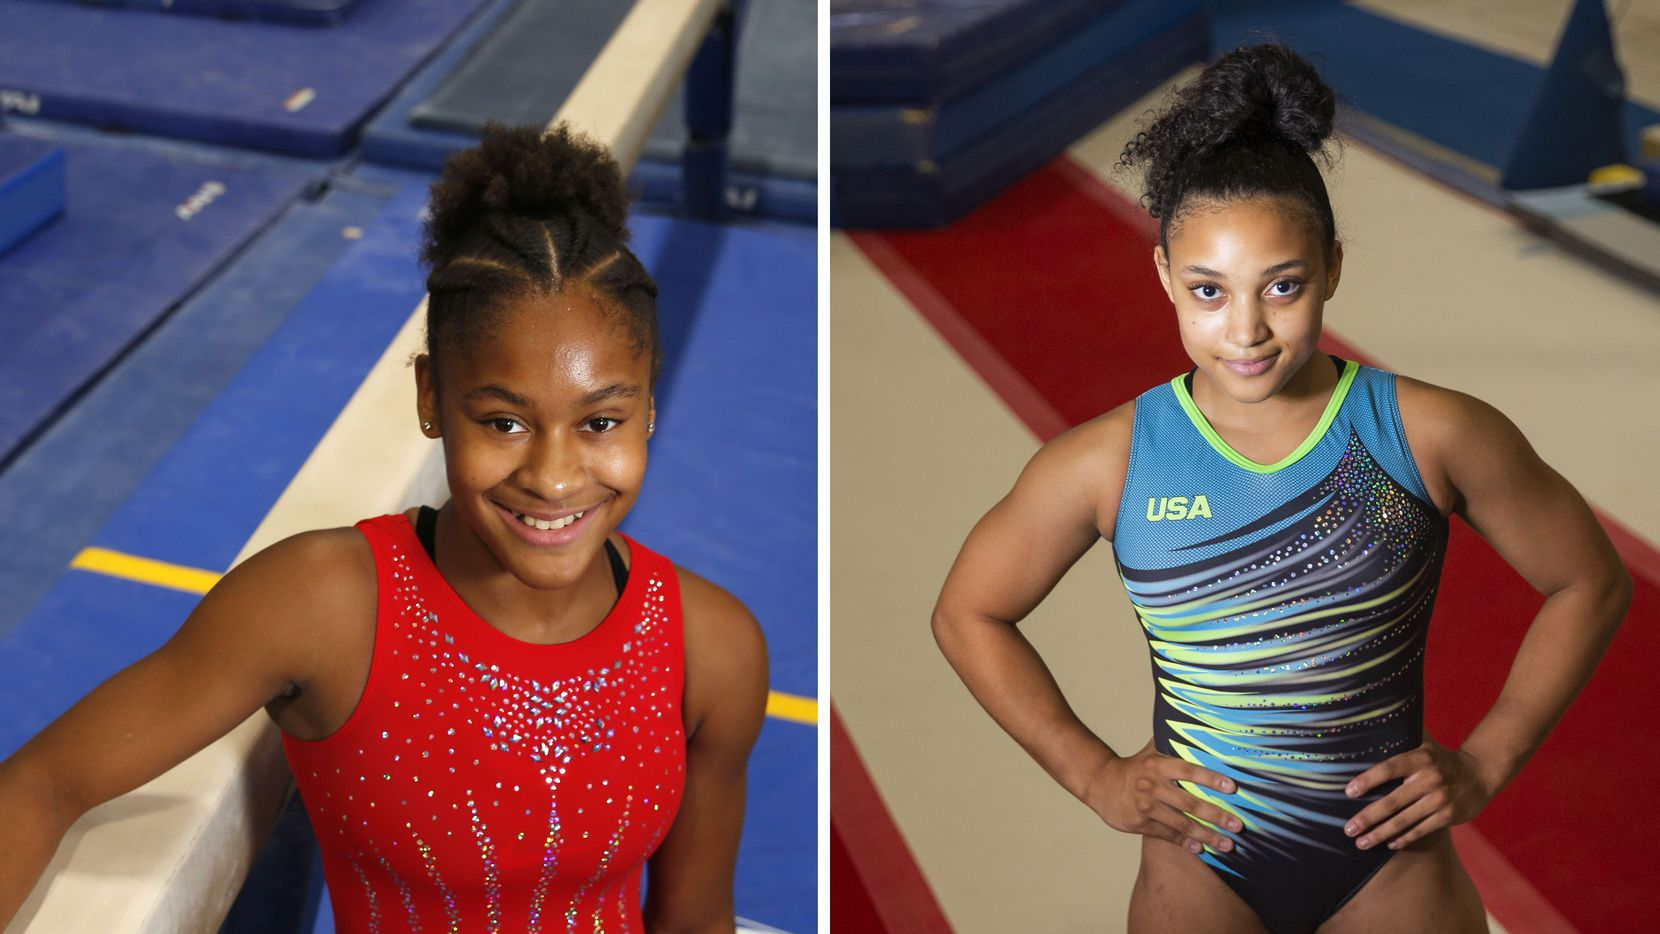 Skye Blakely (left) and Sydney Barros (right) pose for portrait photos.